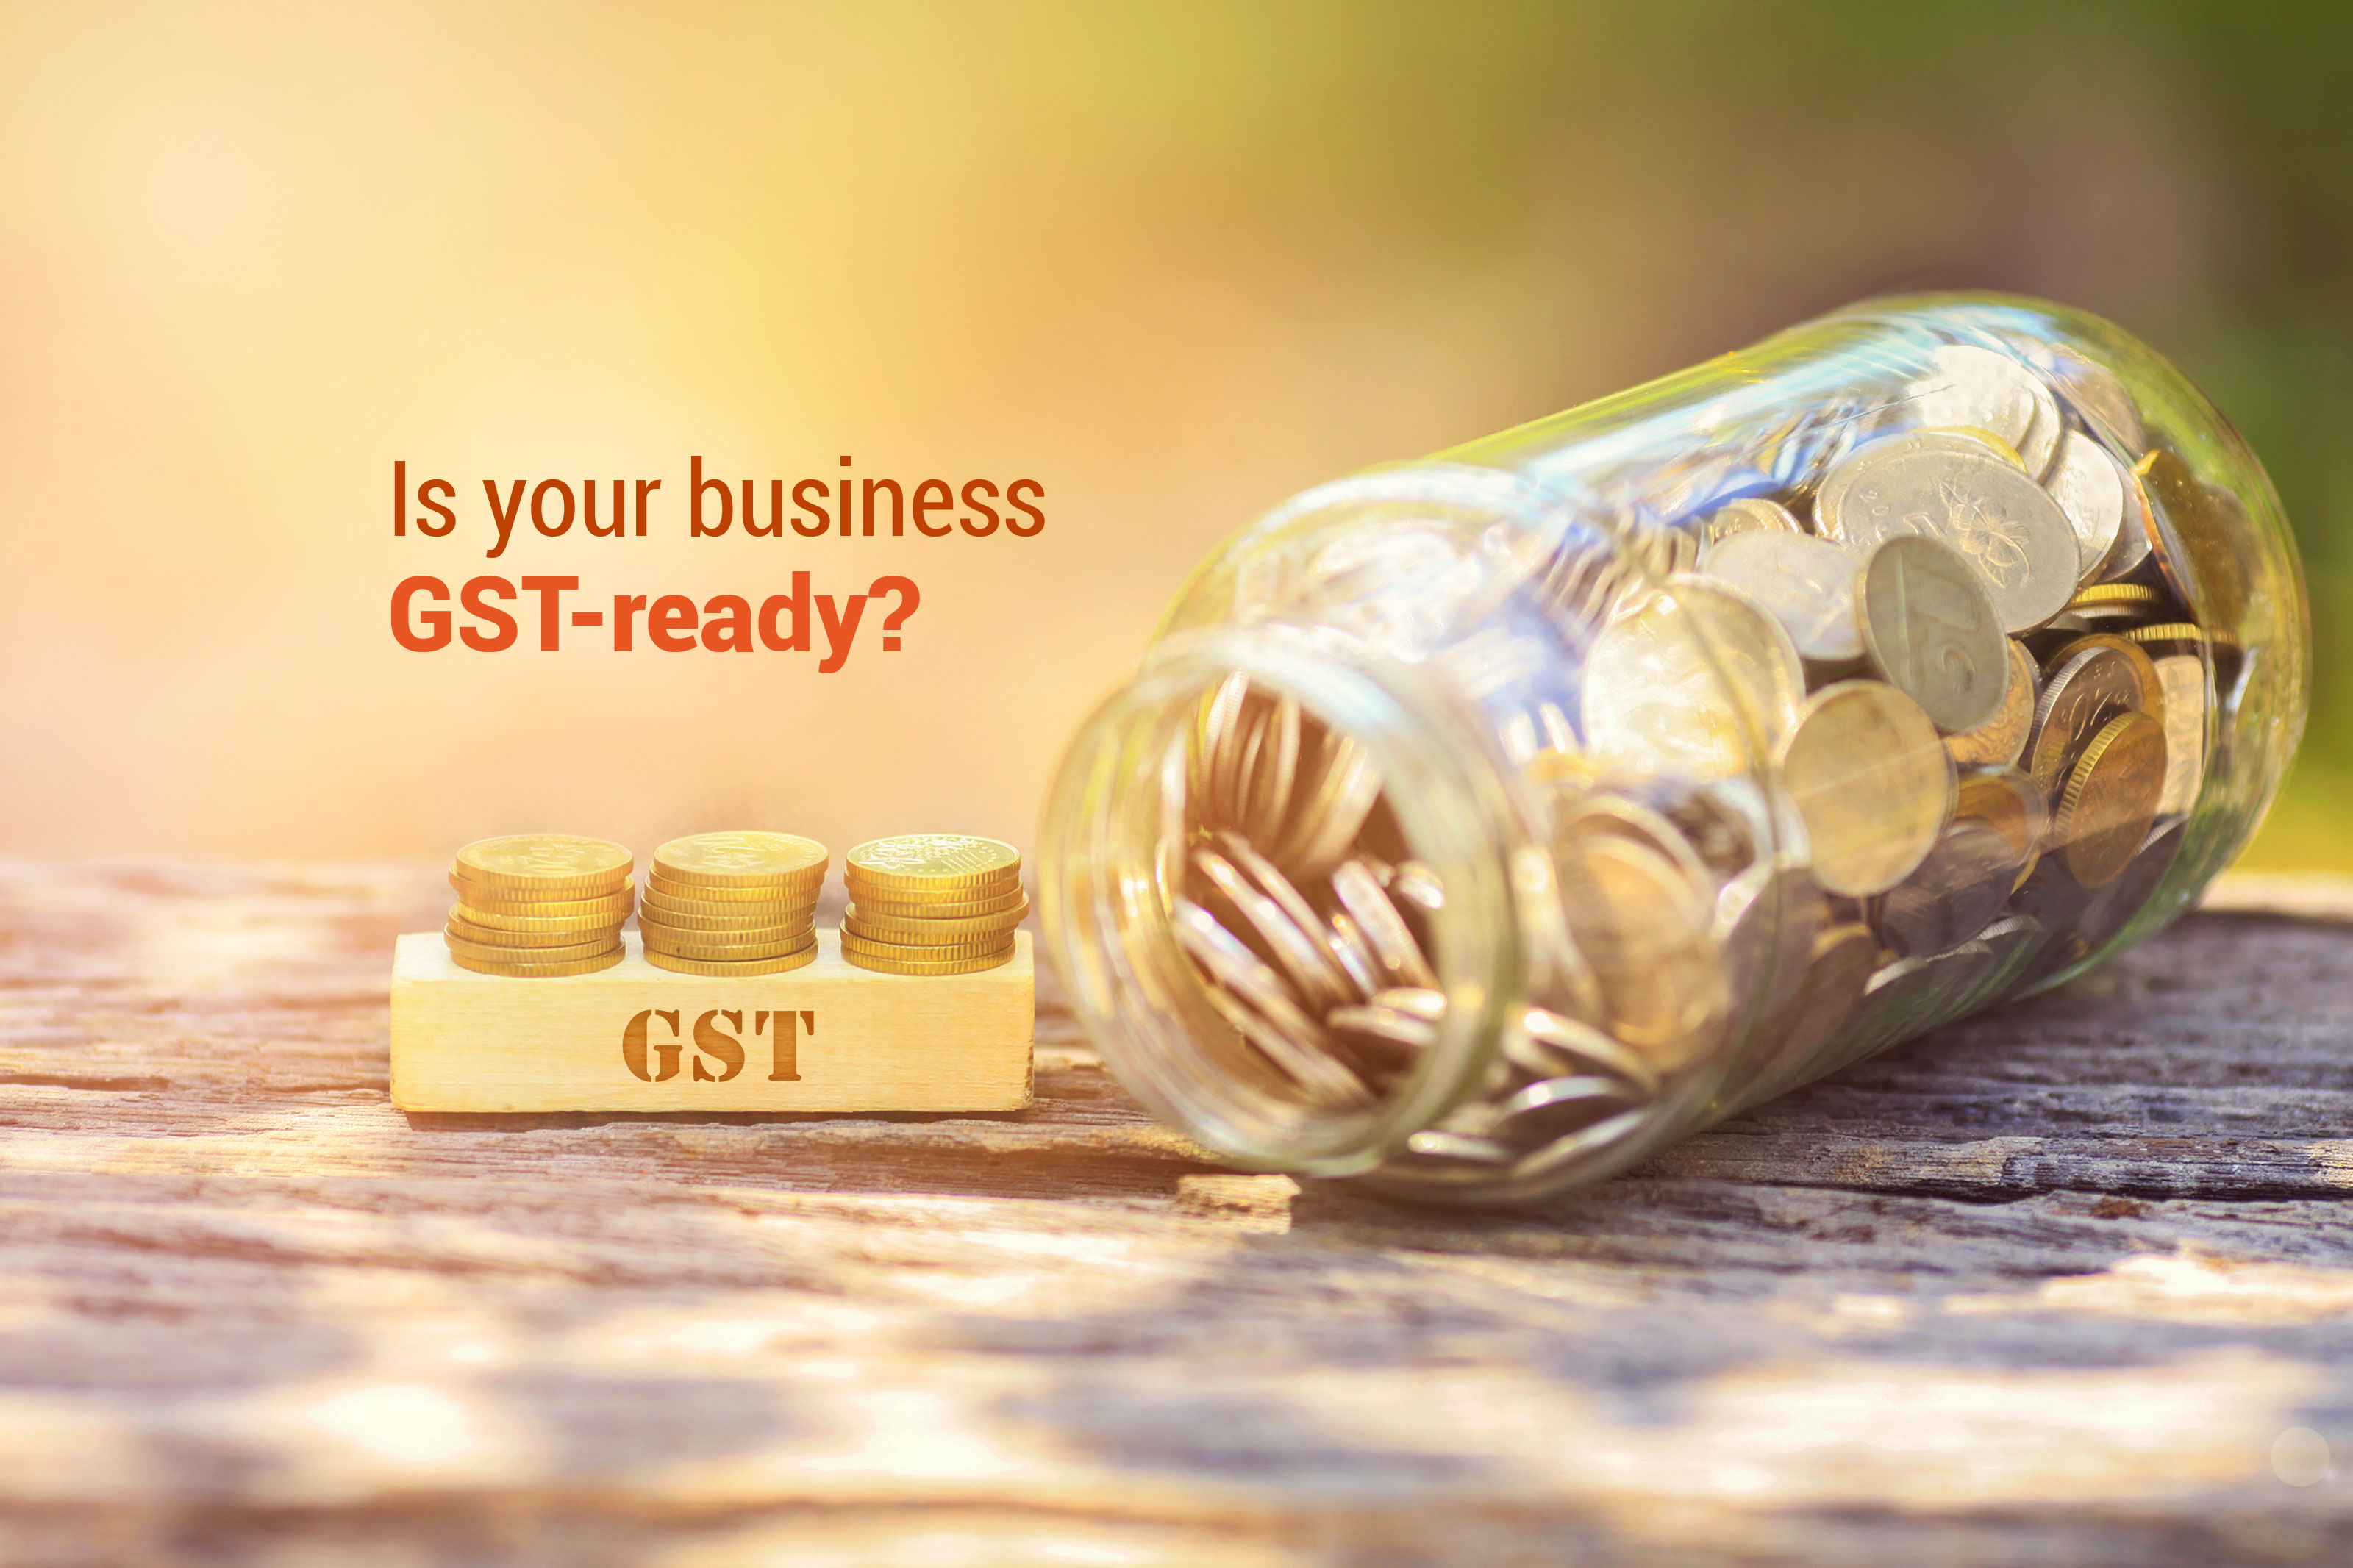 GST for business